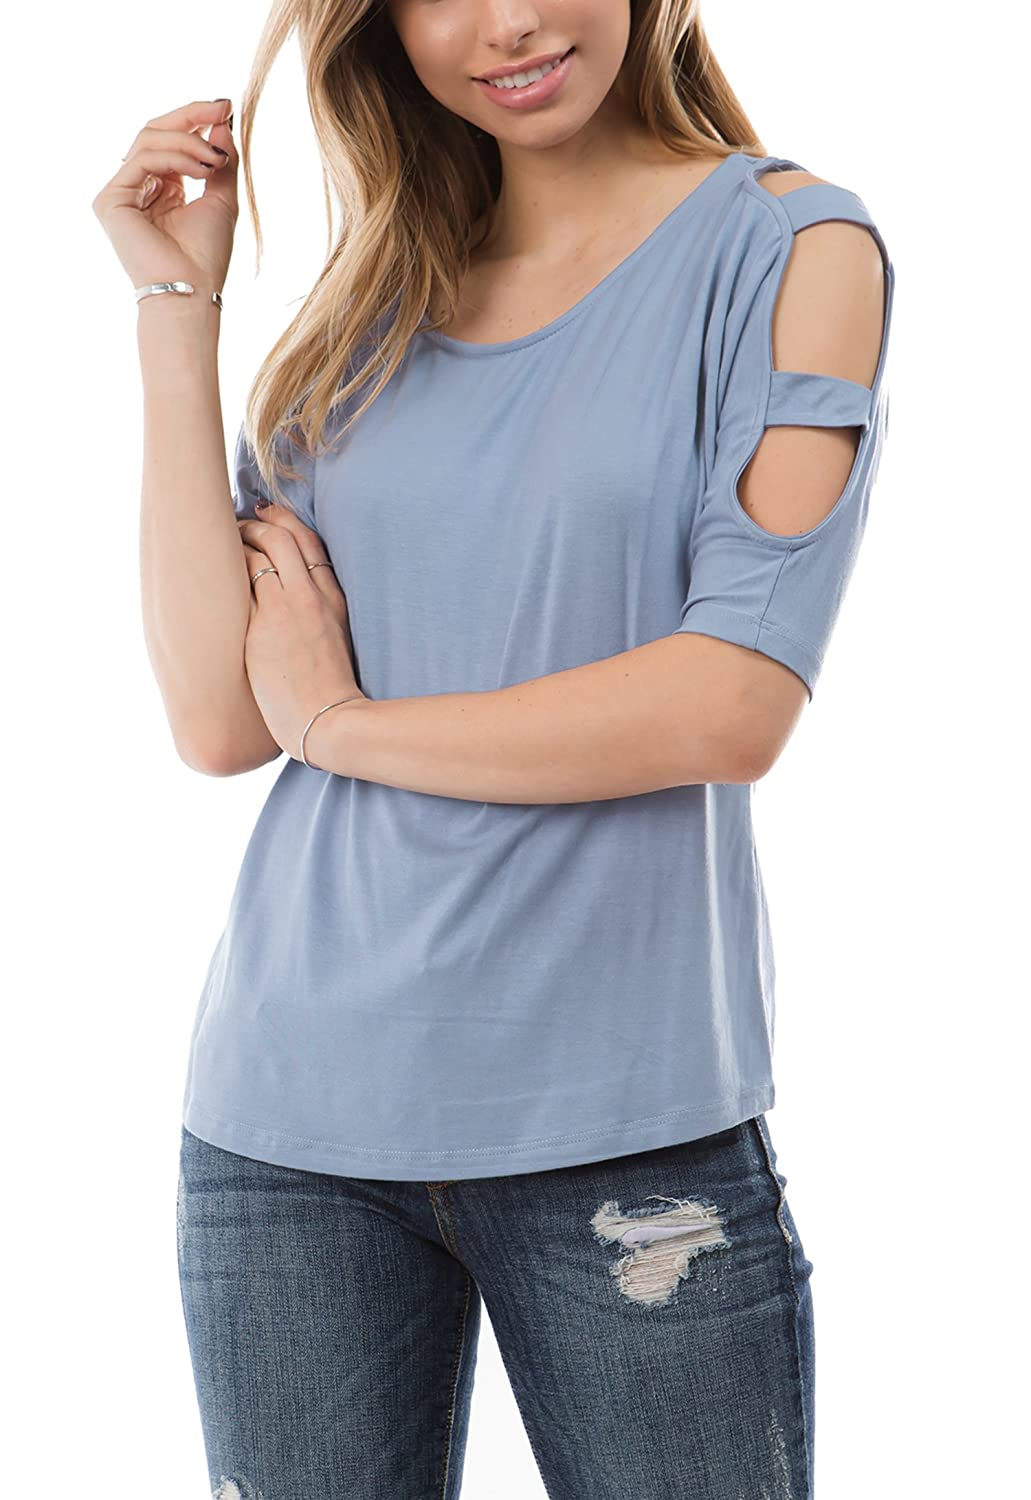 020d1afbe24 Women s relaxed fit round neck fashion top with strappy cut out detail on  the shoulders and sleeve. Available in multiple colors. Available sizes S